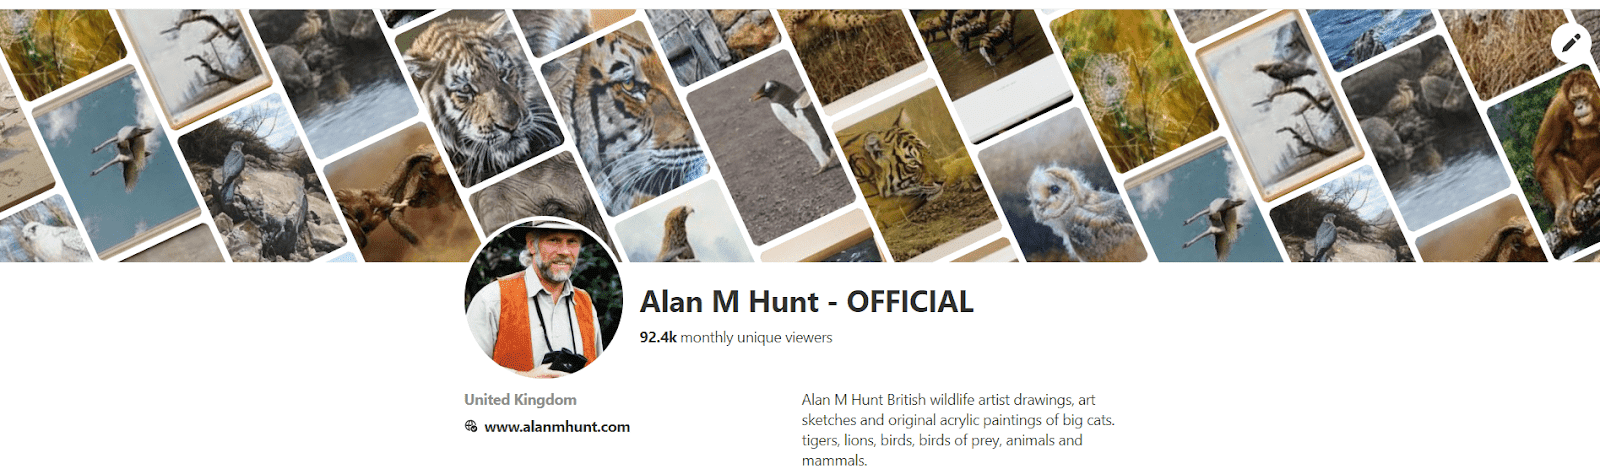 British Animal Artist Alan M Hunt